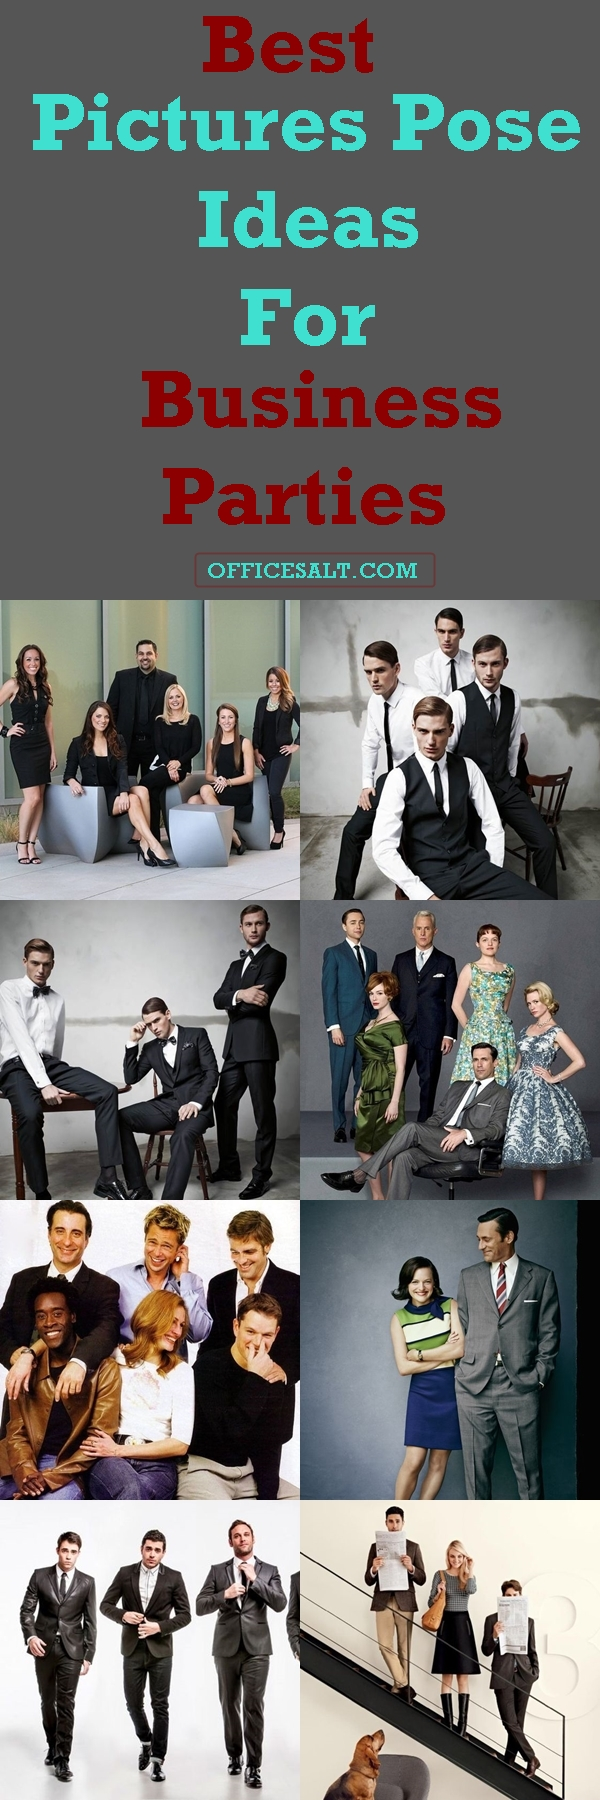 Best-Pictures-Pose-Ideas-For-Business-Partie